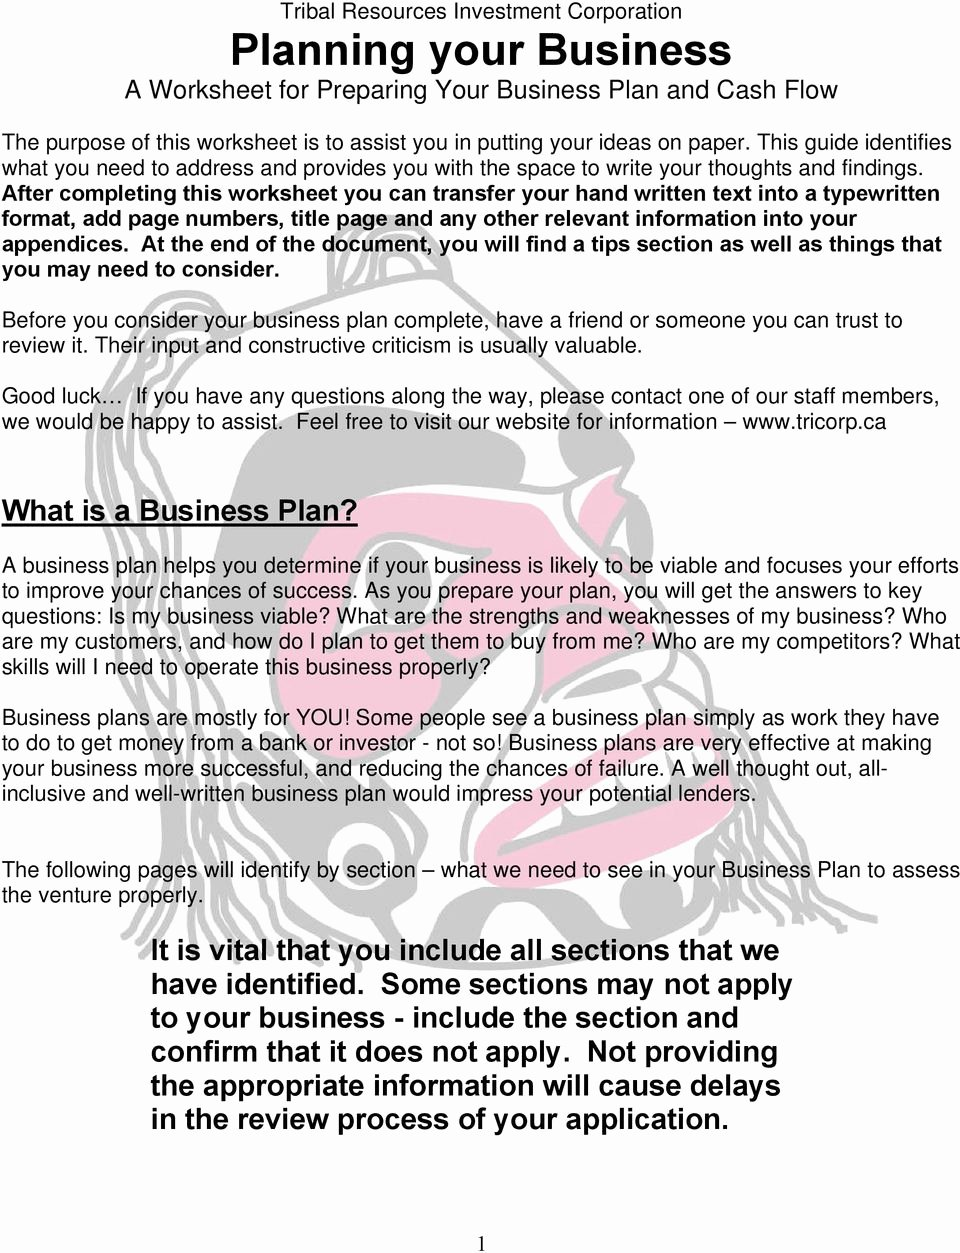 Respecting Others Property Essay Lovely Well Written Business Plan Well Written Business Plan